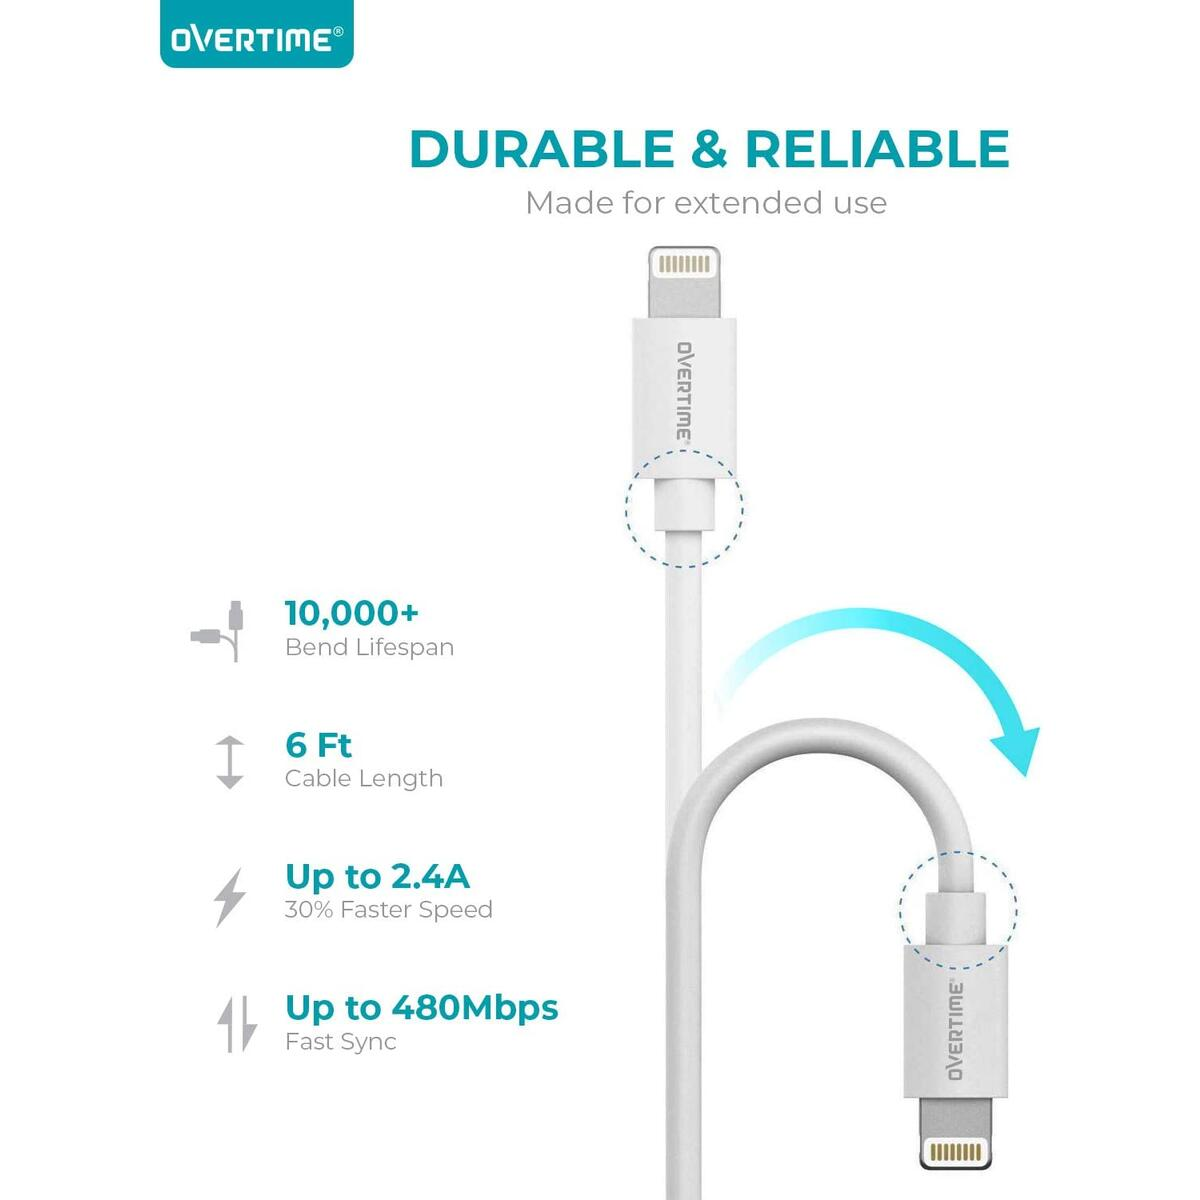 Apple MFi Certified Lightning Cable, iPhone & iPad Fast Charger 6ft, Charging Cord for iPhone 11/11 Pro/11 Pro Max/X/XS Max/XR/8 Plus/7/6/5/SE, iPad Pro/Air 2/Mini 4/3/2, iPod Touch - White